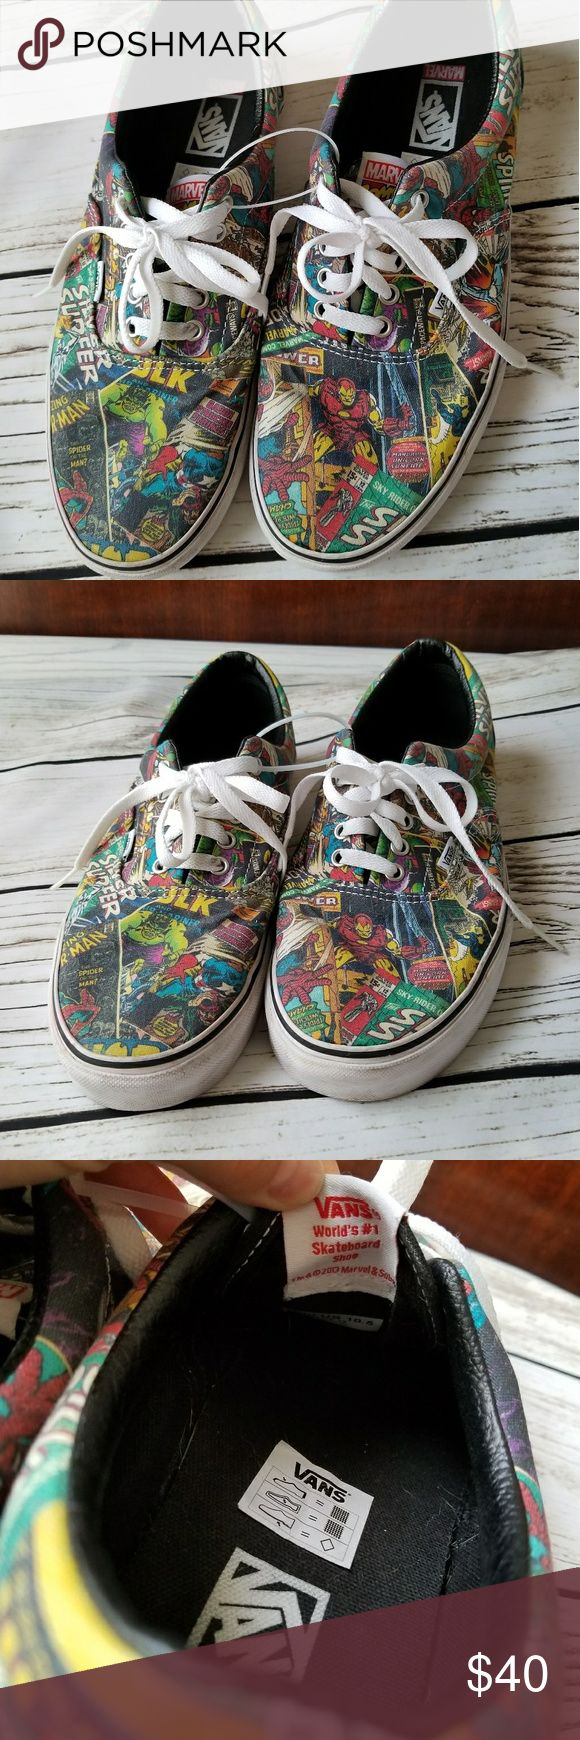 Vans Marvel COMICS snickers shoes 10.5 skateboard Excellent used condition-  worn once  Vans   WORLDS #1 skateboard shoes  Size 10.5 US  MARVEL COMICS PRINT- RARE  from smoke free home Vans Shoes Sneakers